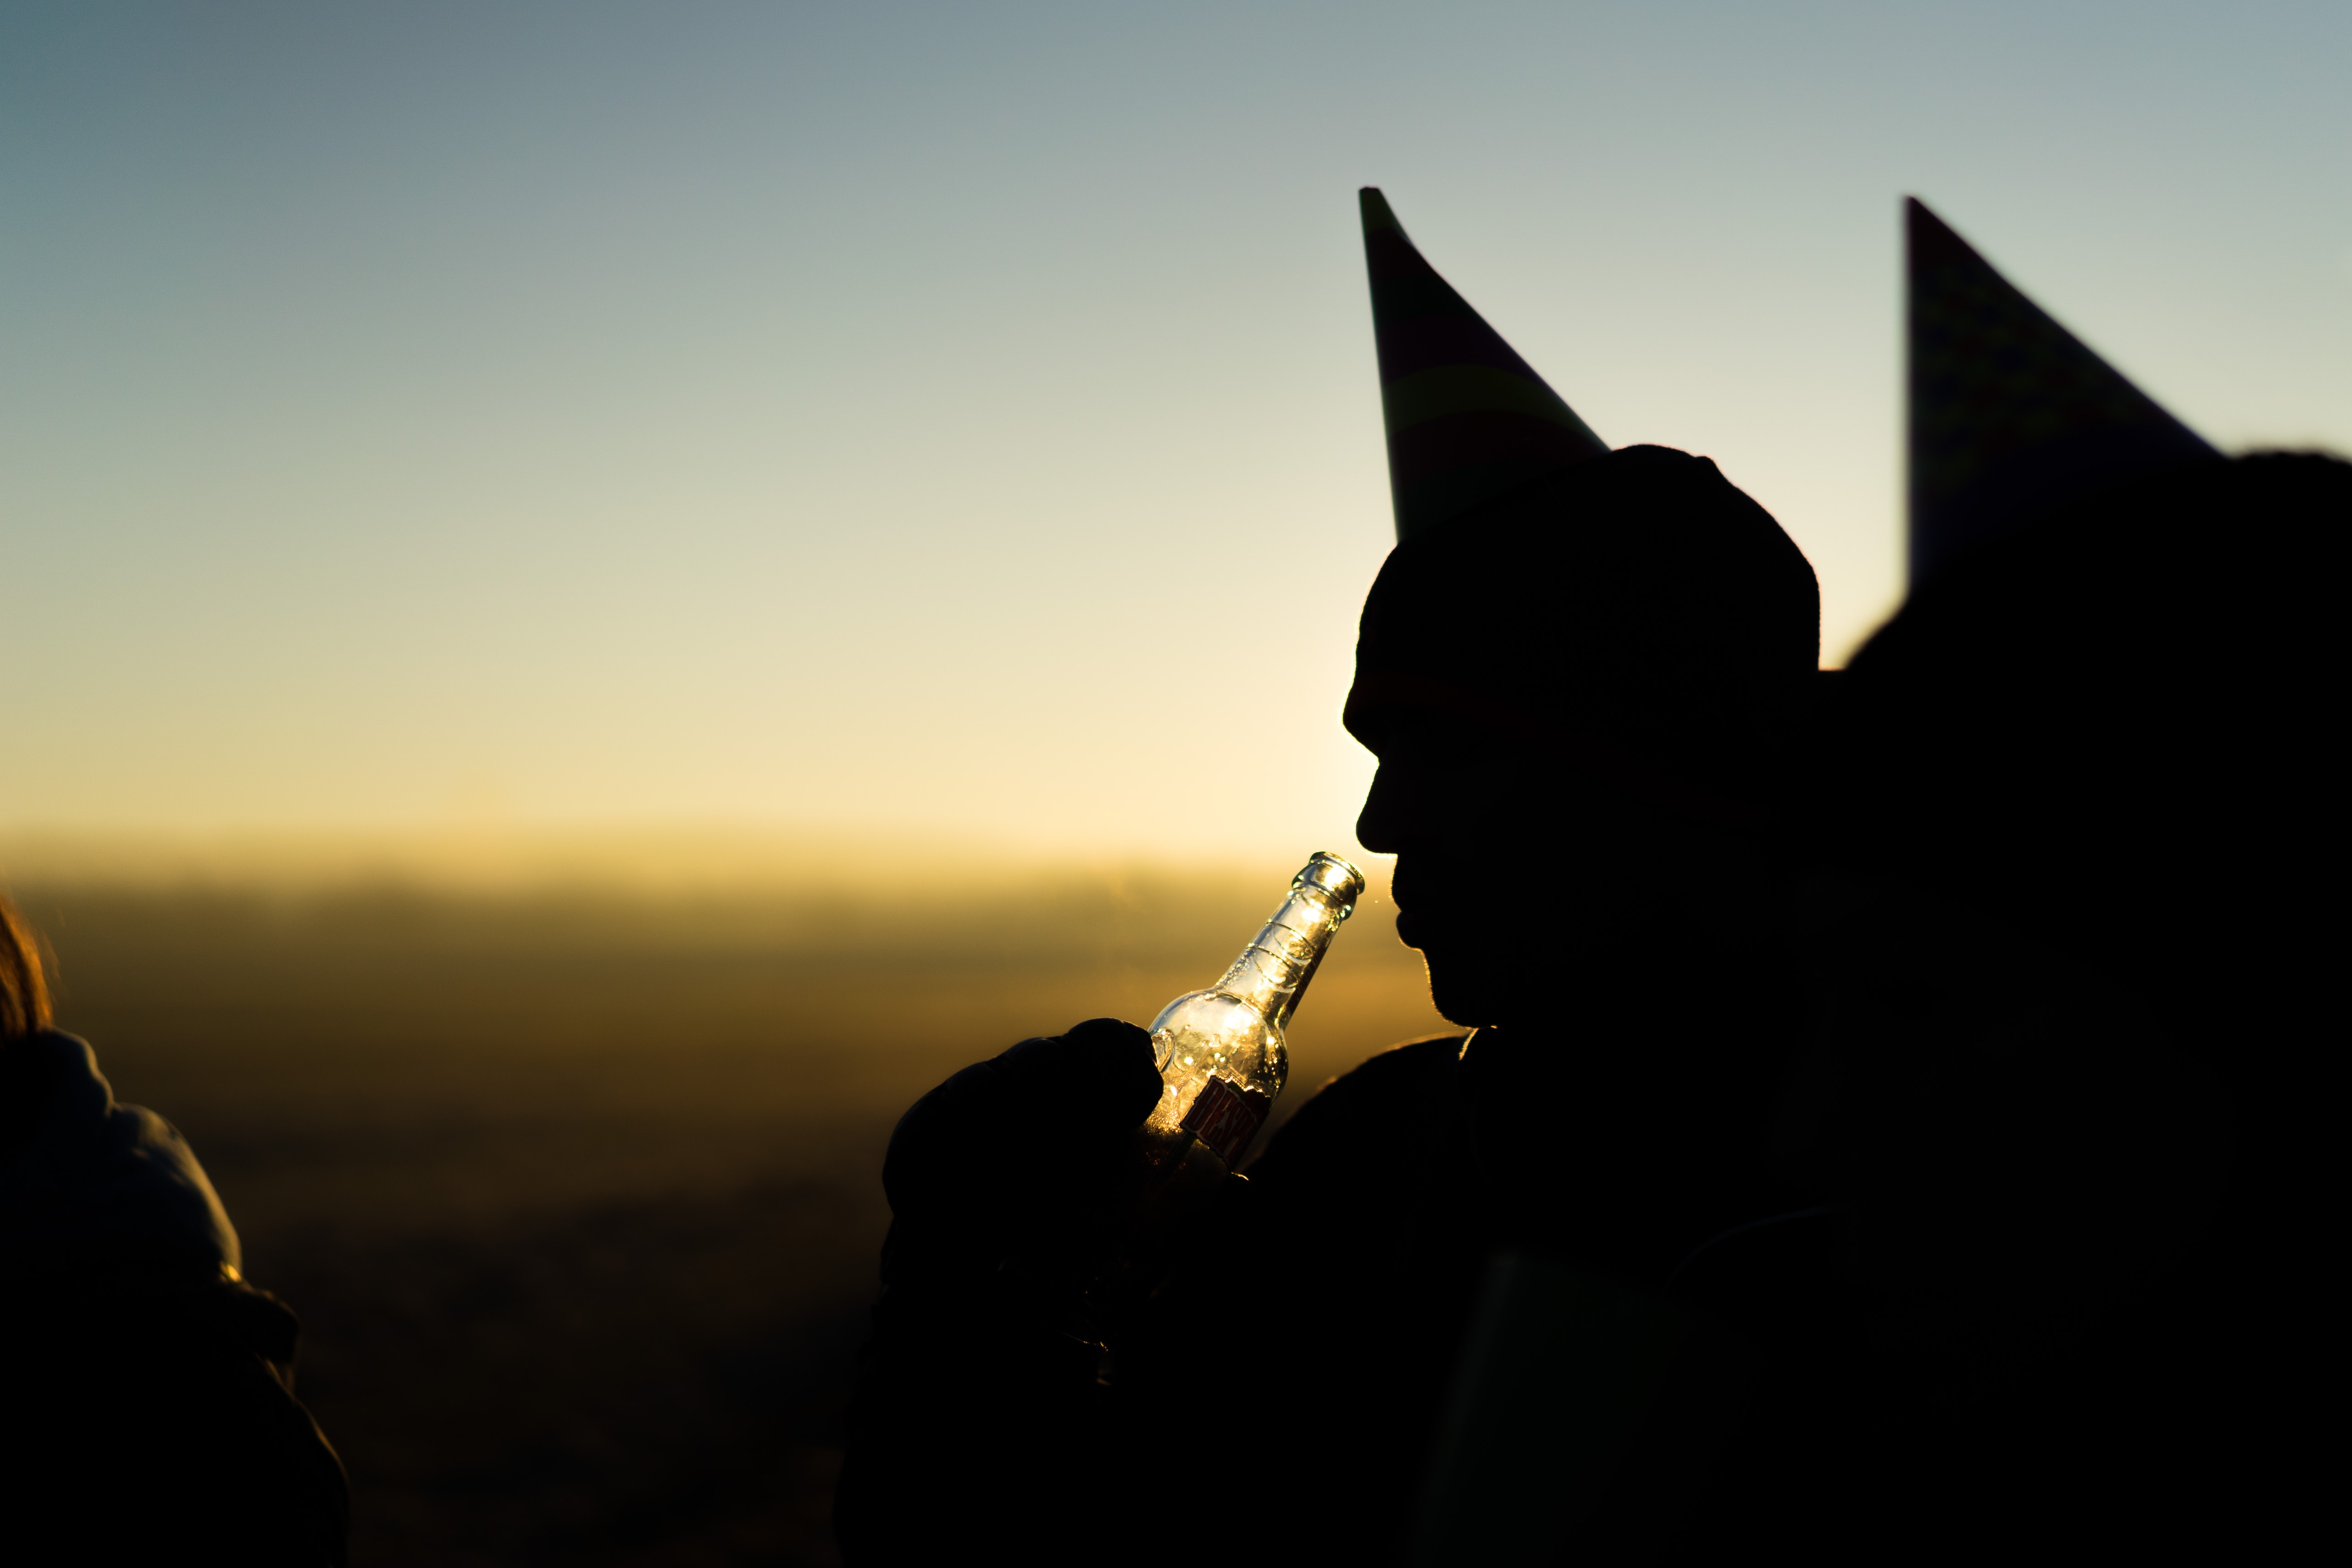 A silhouette of a man drinking from a beer bottle wearing a party hat